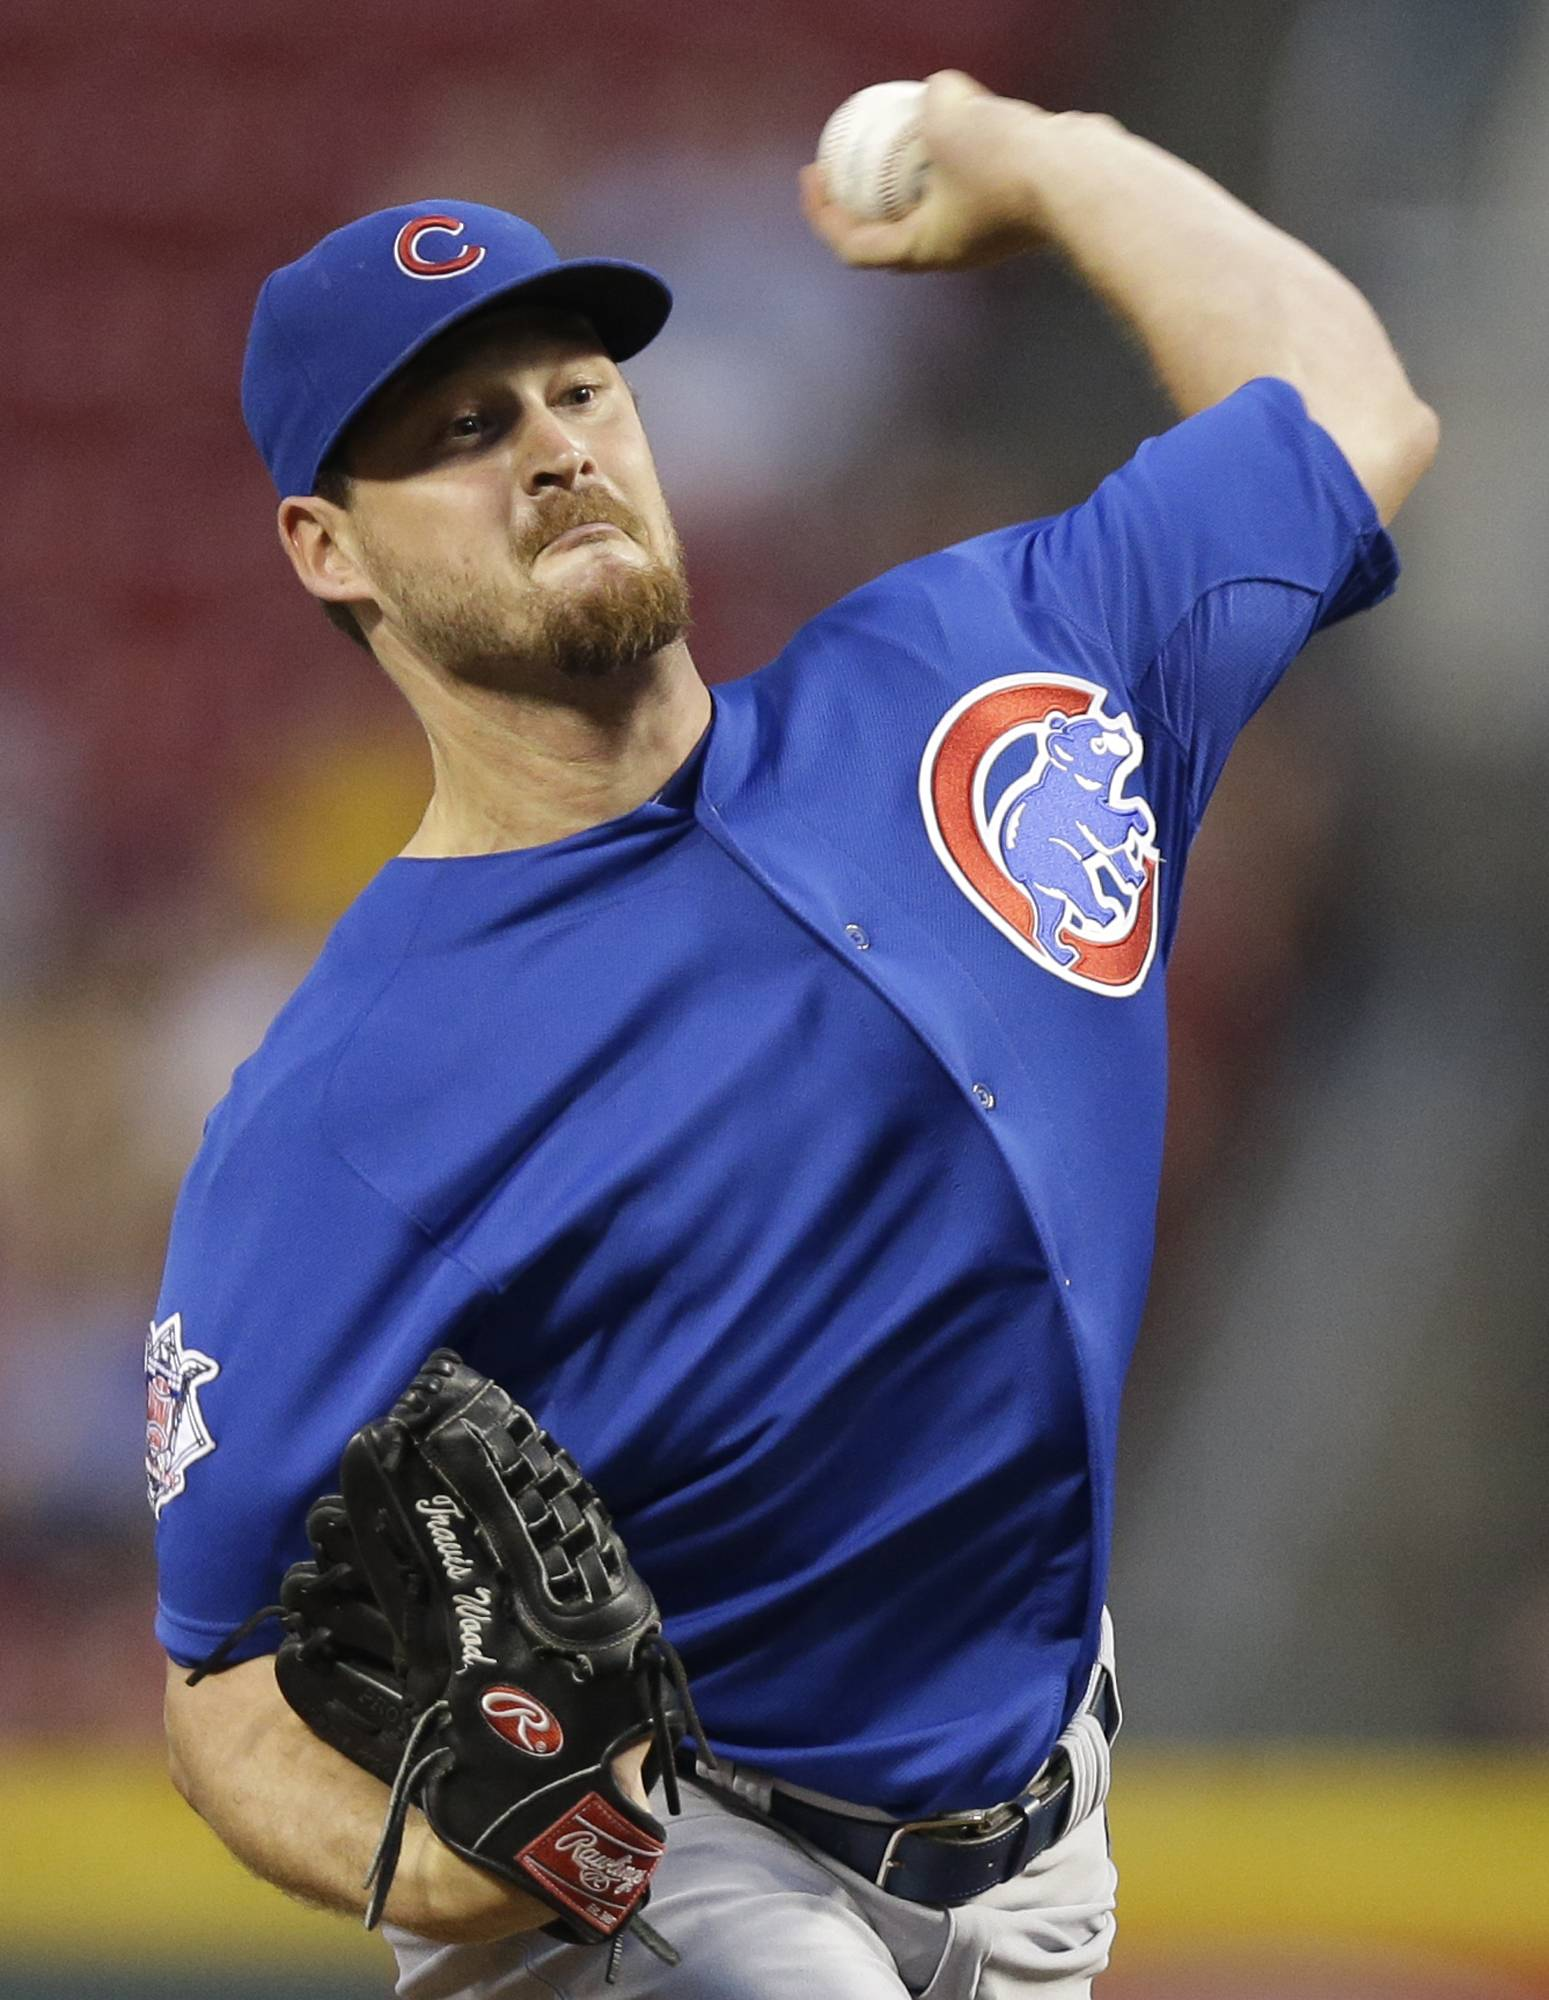 Chicago Cubs starting pitcher Travis Wood throws against the Cincinnati Reds in the first inning of a baseball game, Tuesday, Aug. 26, 2014, in Cincinnati.